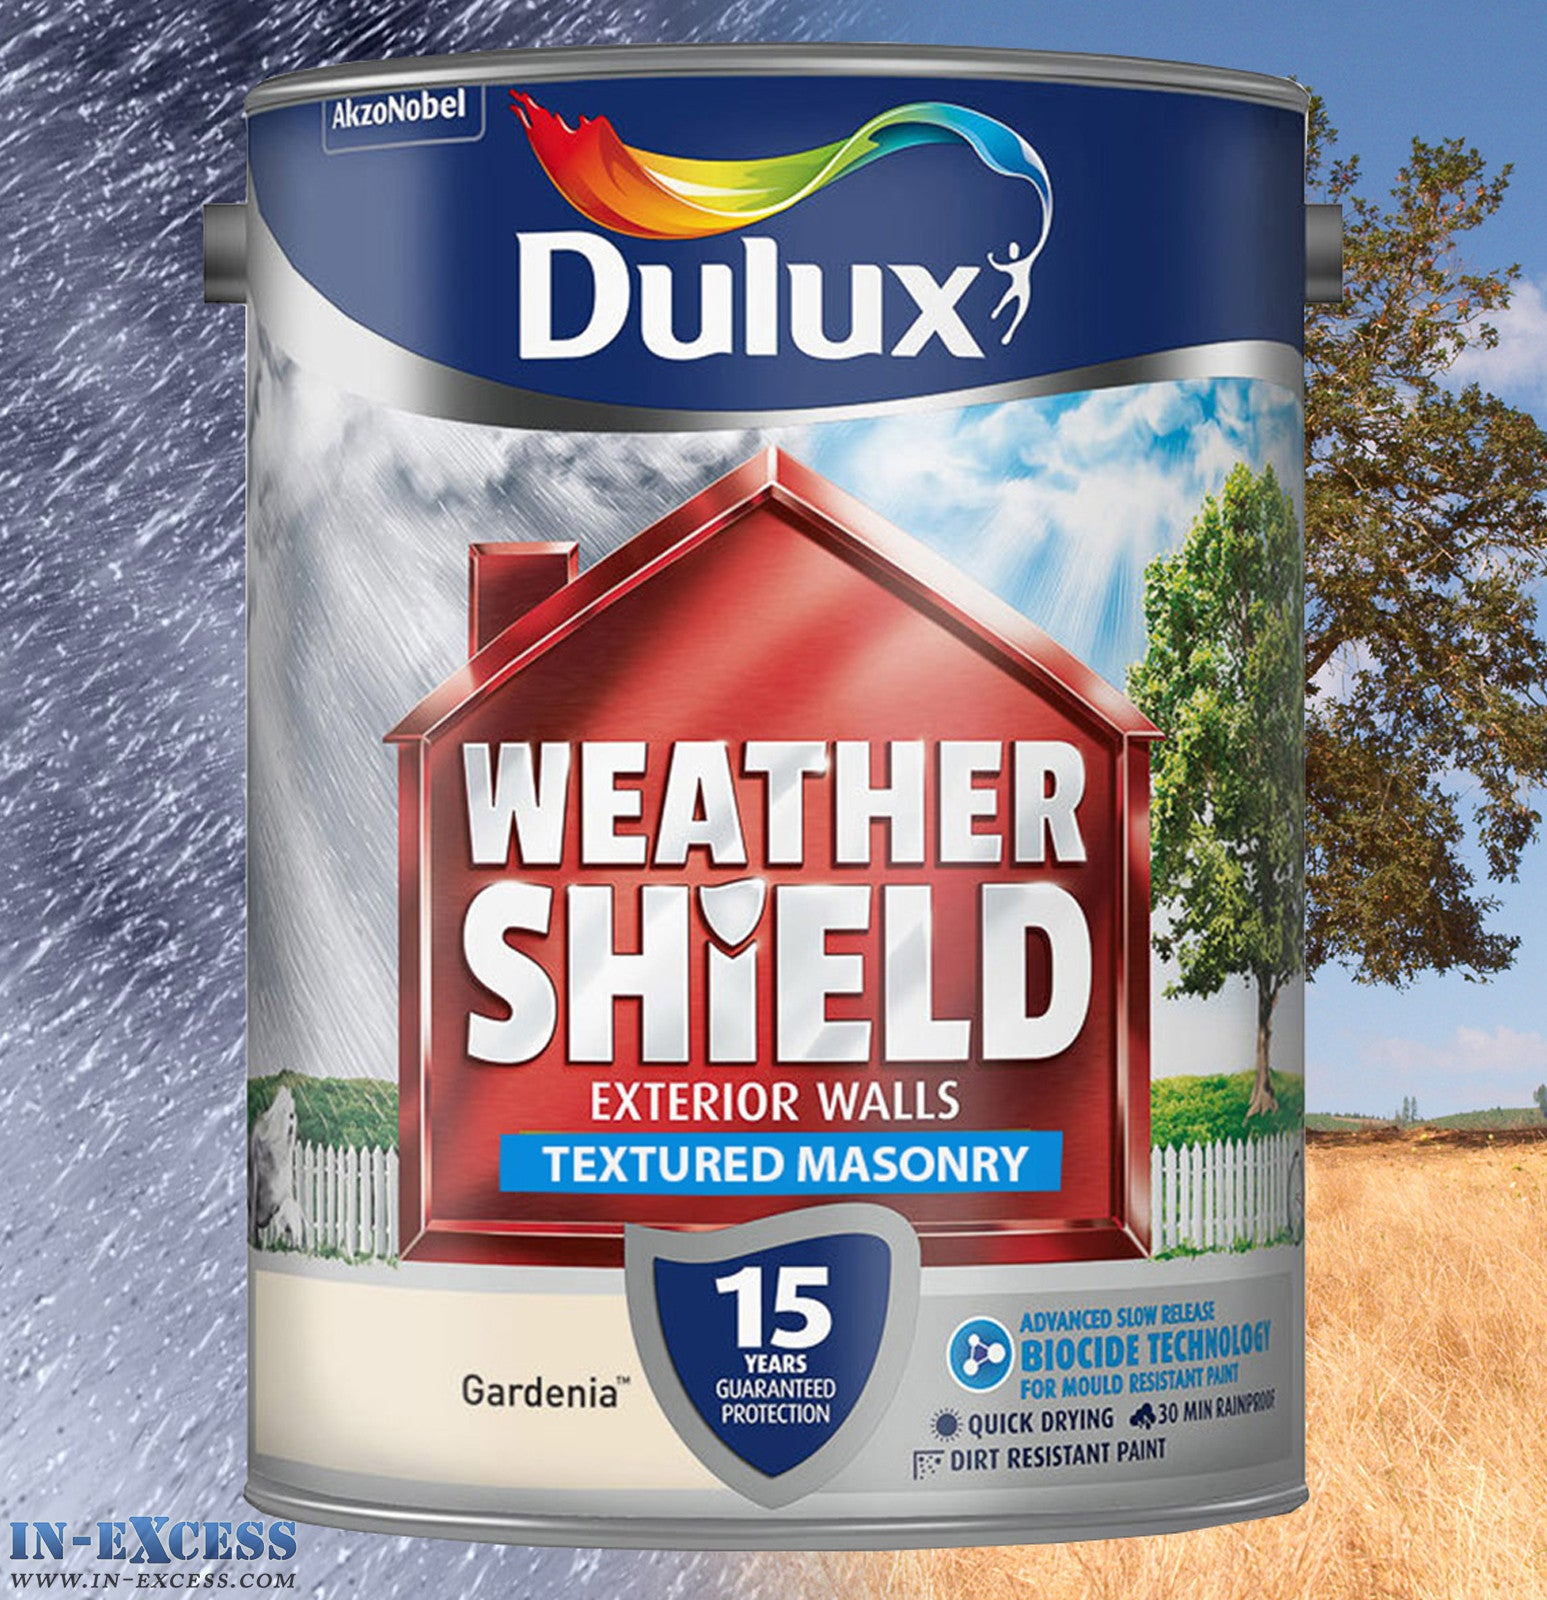 ... Dulux Weather Shield Exterior Walls Masonry Paint   Textured Gardenia 5  Litre ...